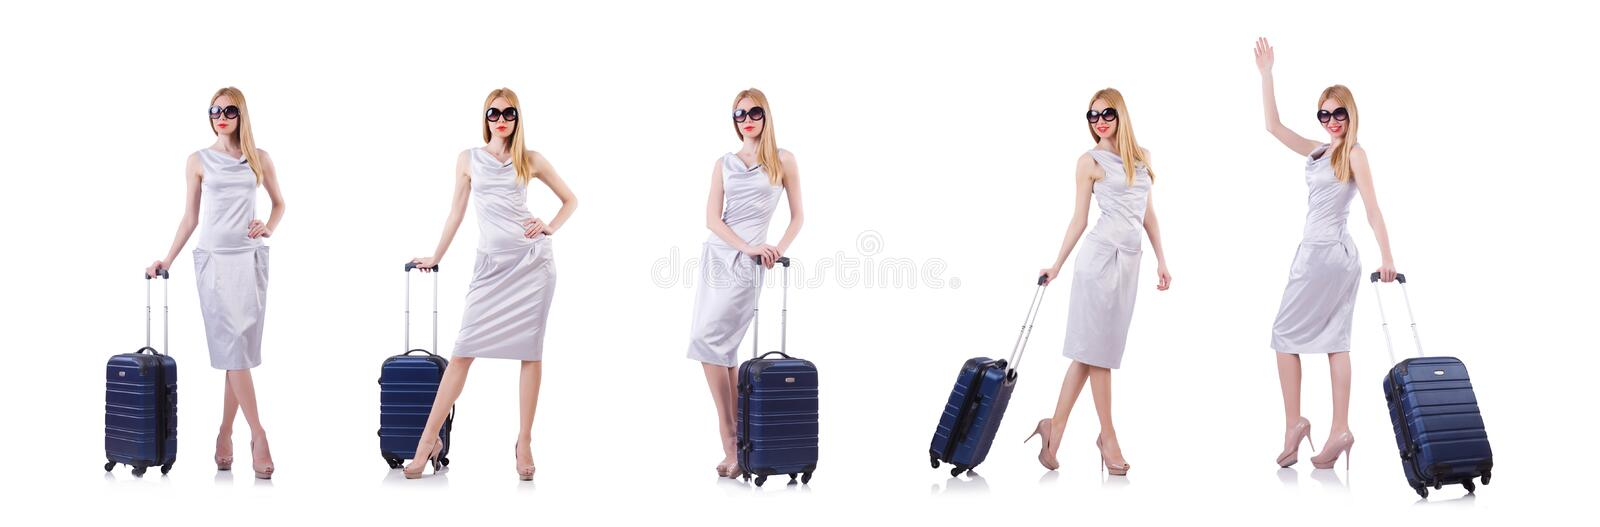 Young woman preparing for vacation royalty free stock images